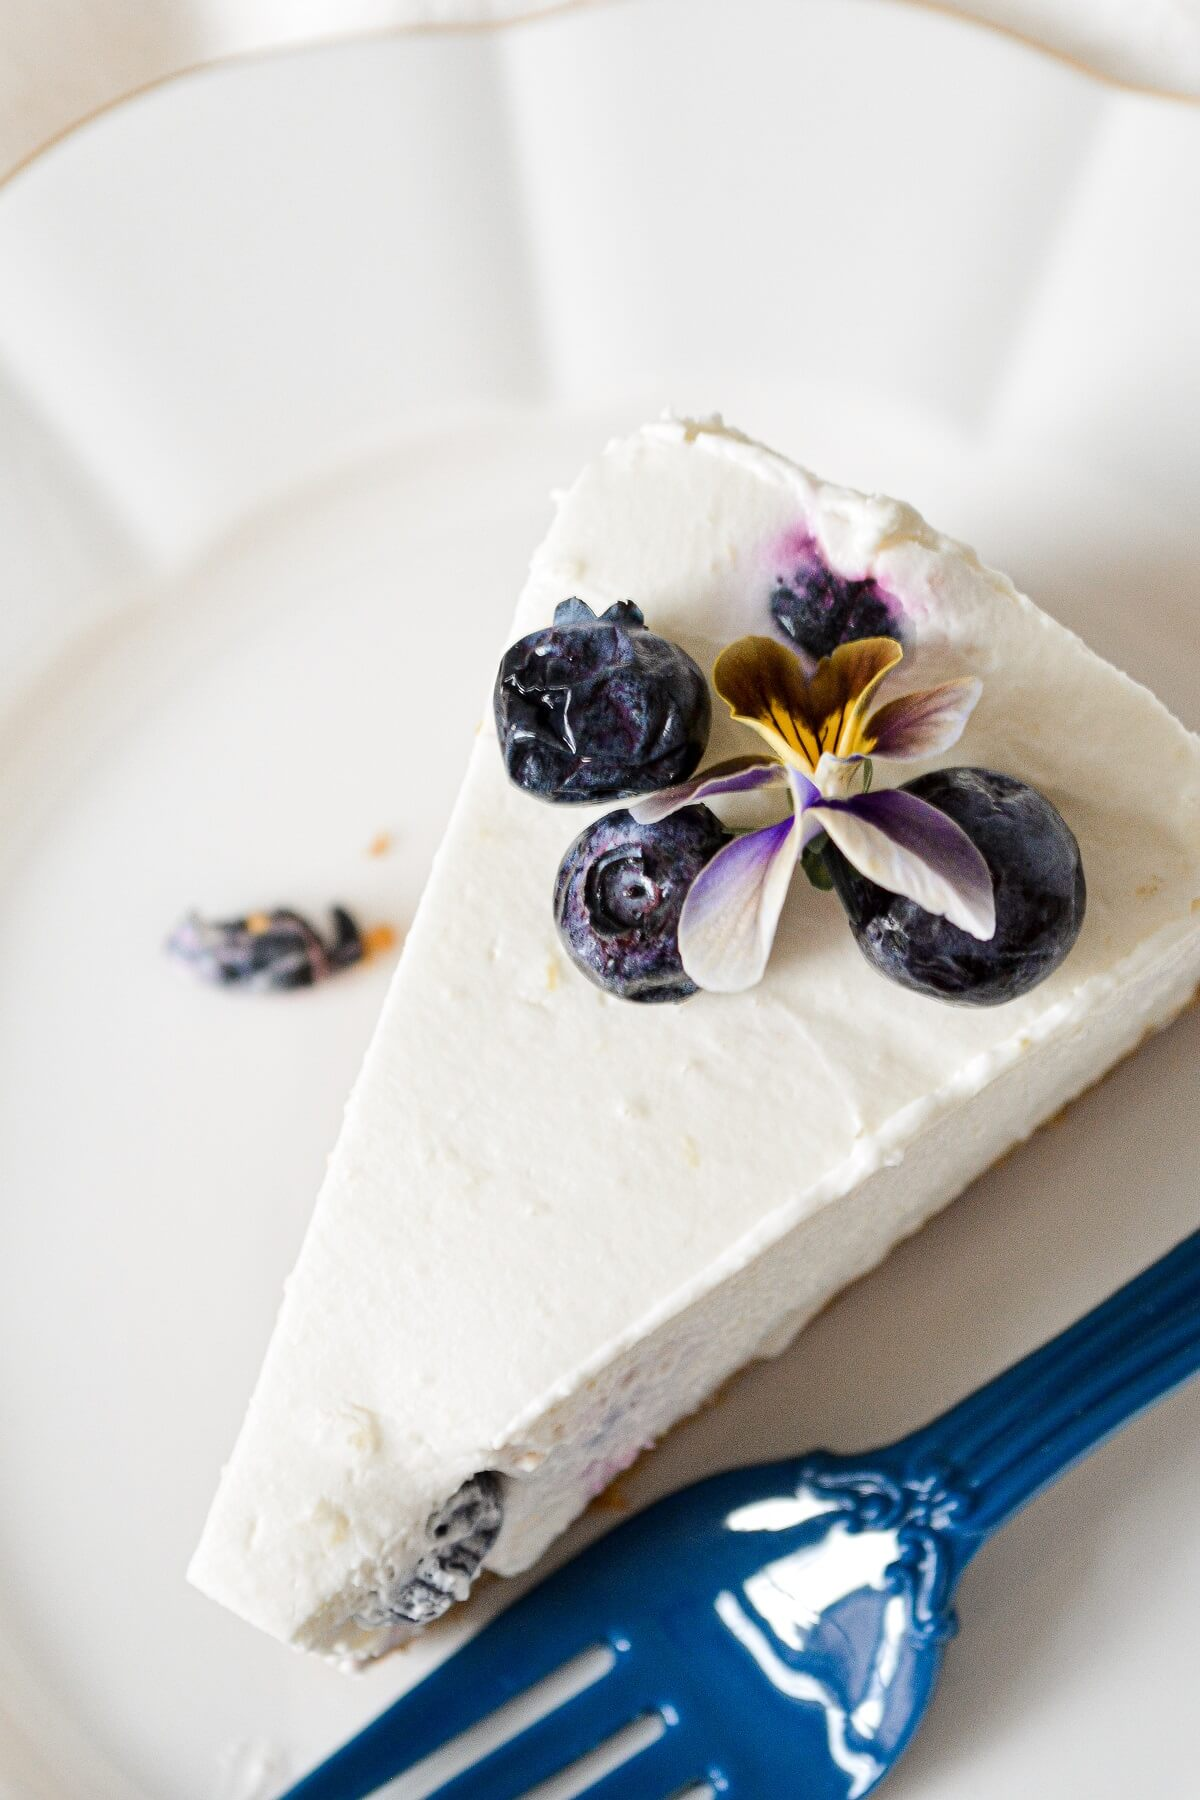 A slice of lemon blueberry cheesecake, decorated with blueberries and edible flowers.